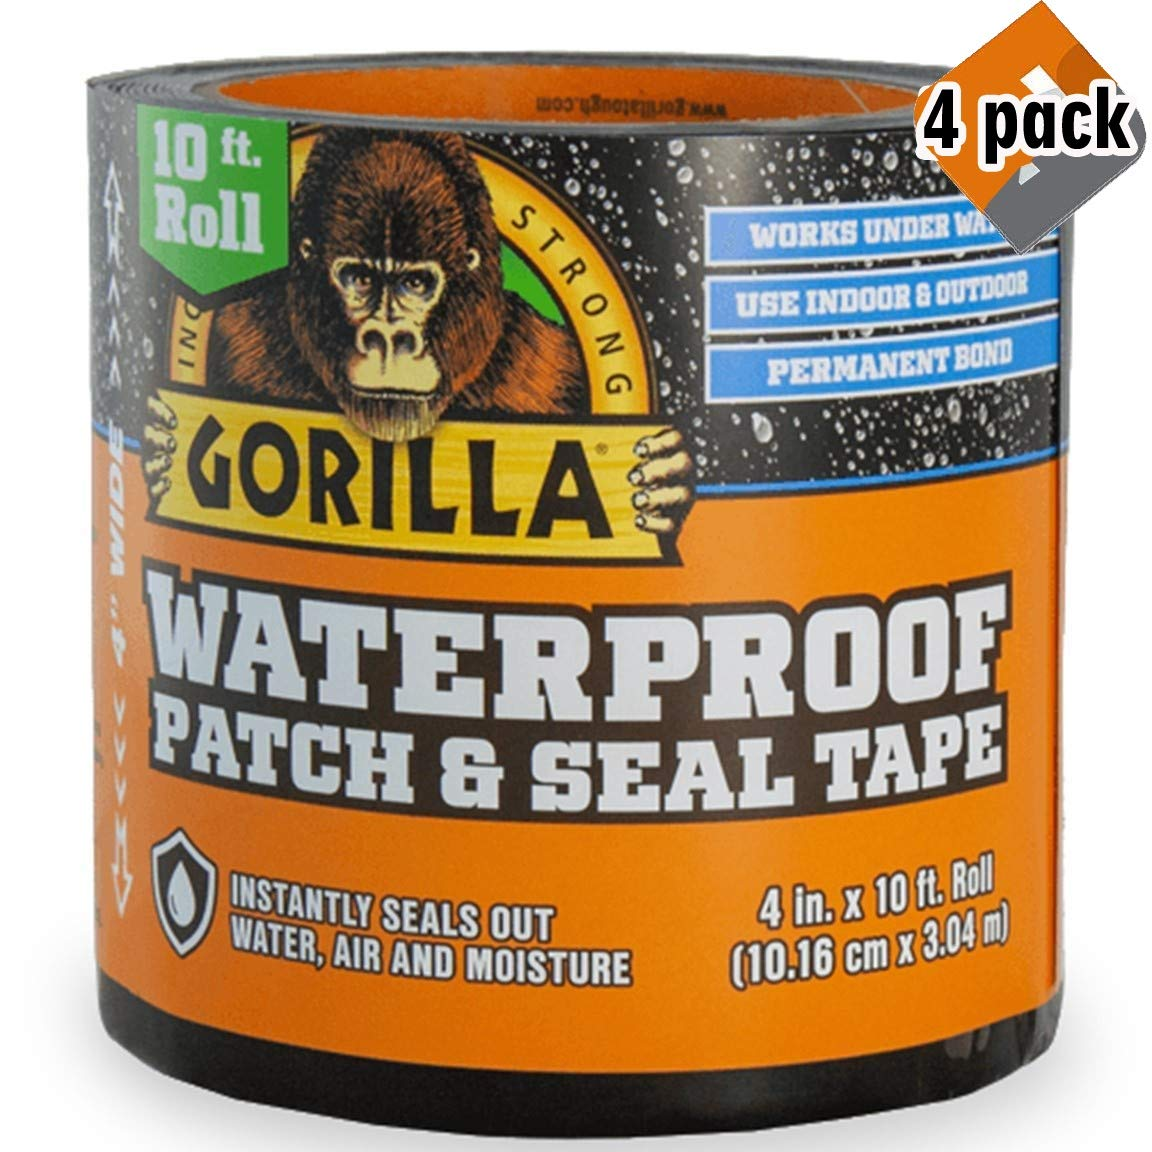 Gorilla 4612502 Waterproof Patch & Seal Tape 4'' x 10' Black, Pack 4